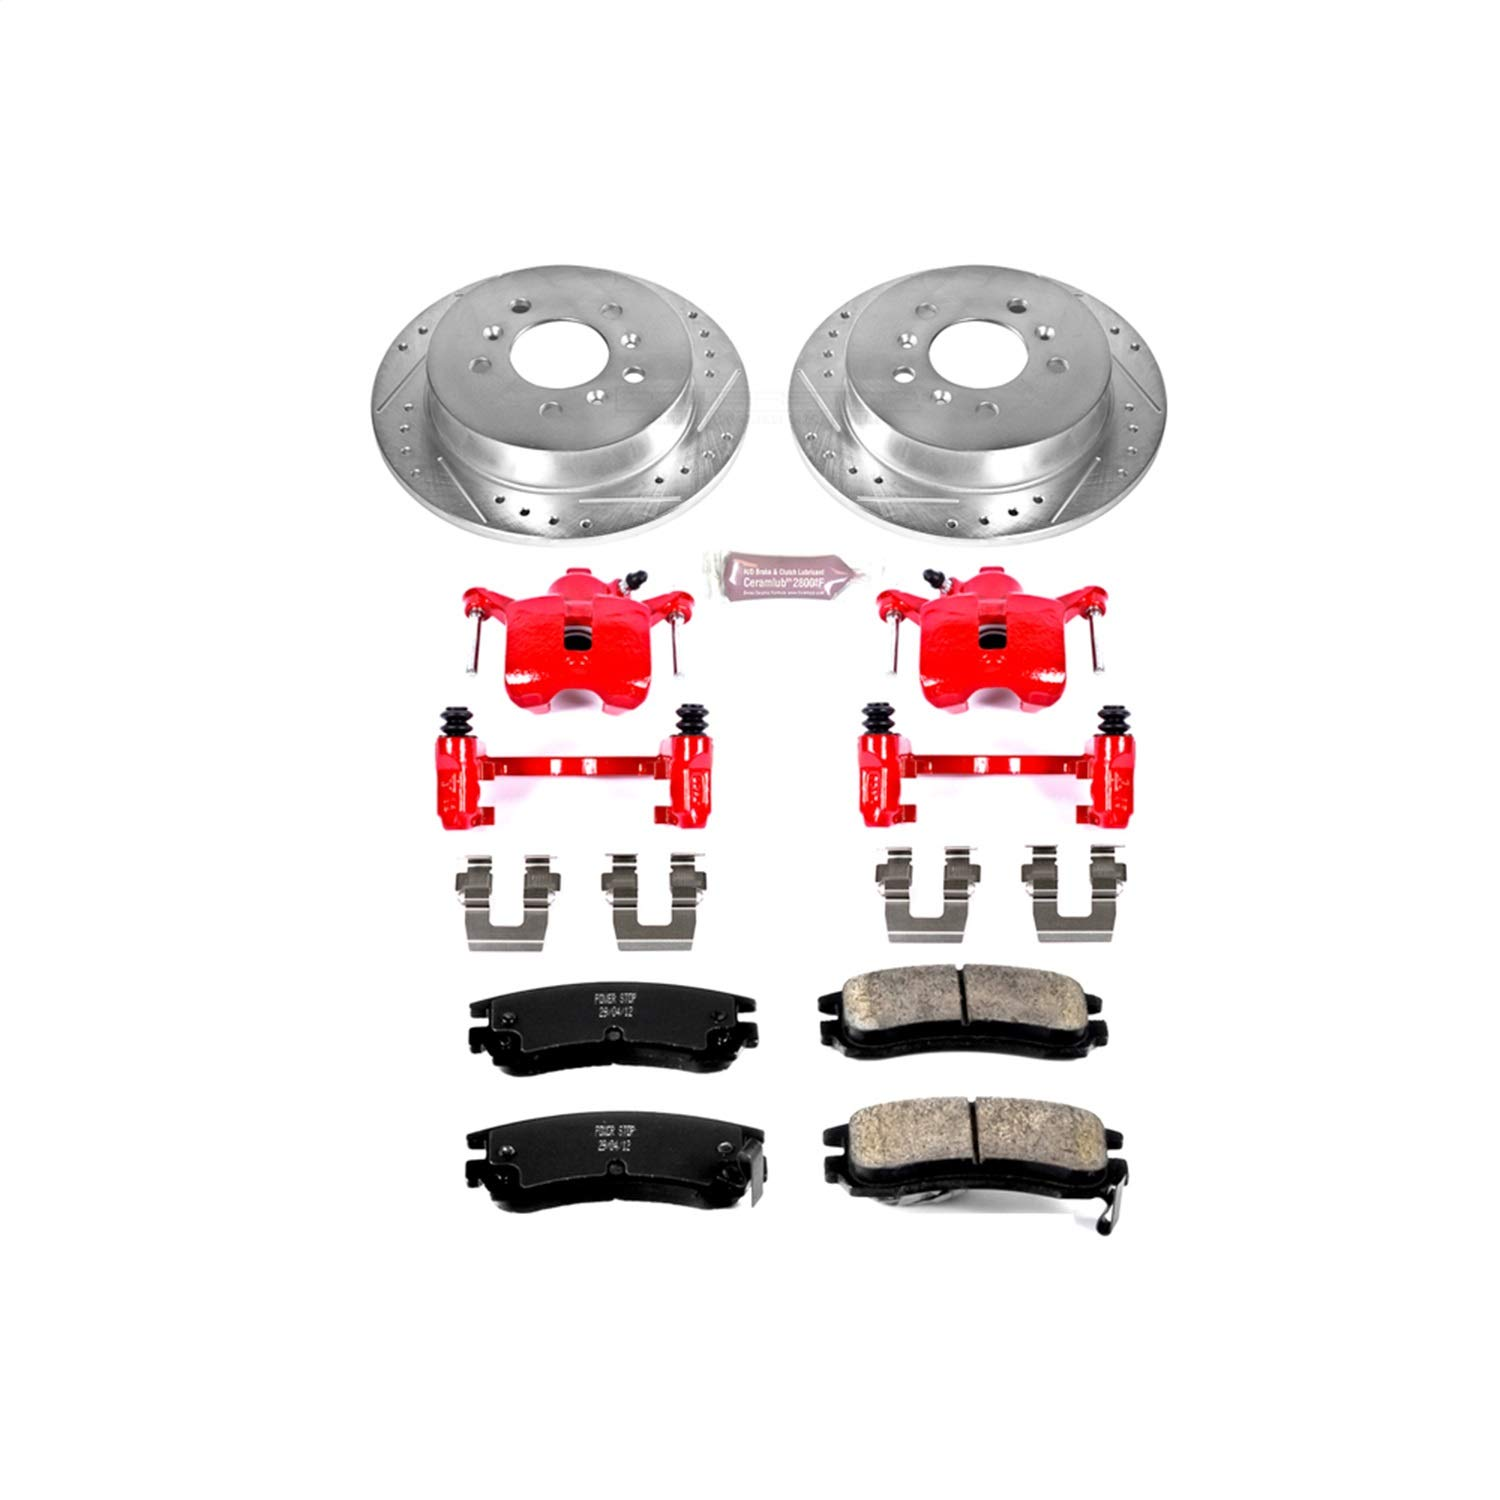 Power Stop KC1440 1-Click Performance Brake Kit with Calipers Rear Only